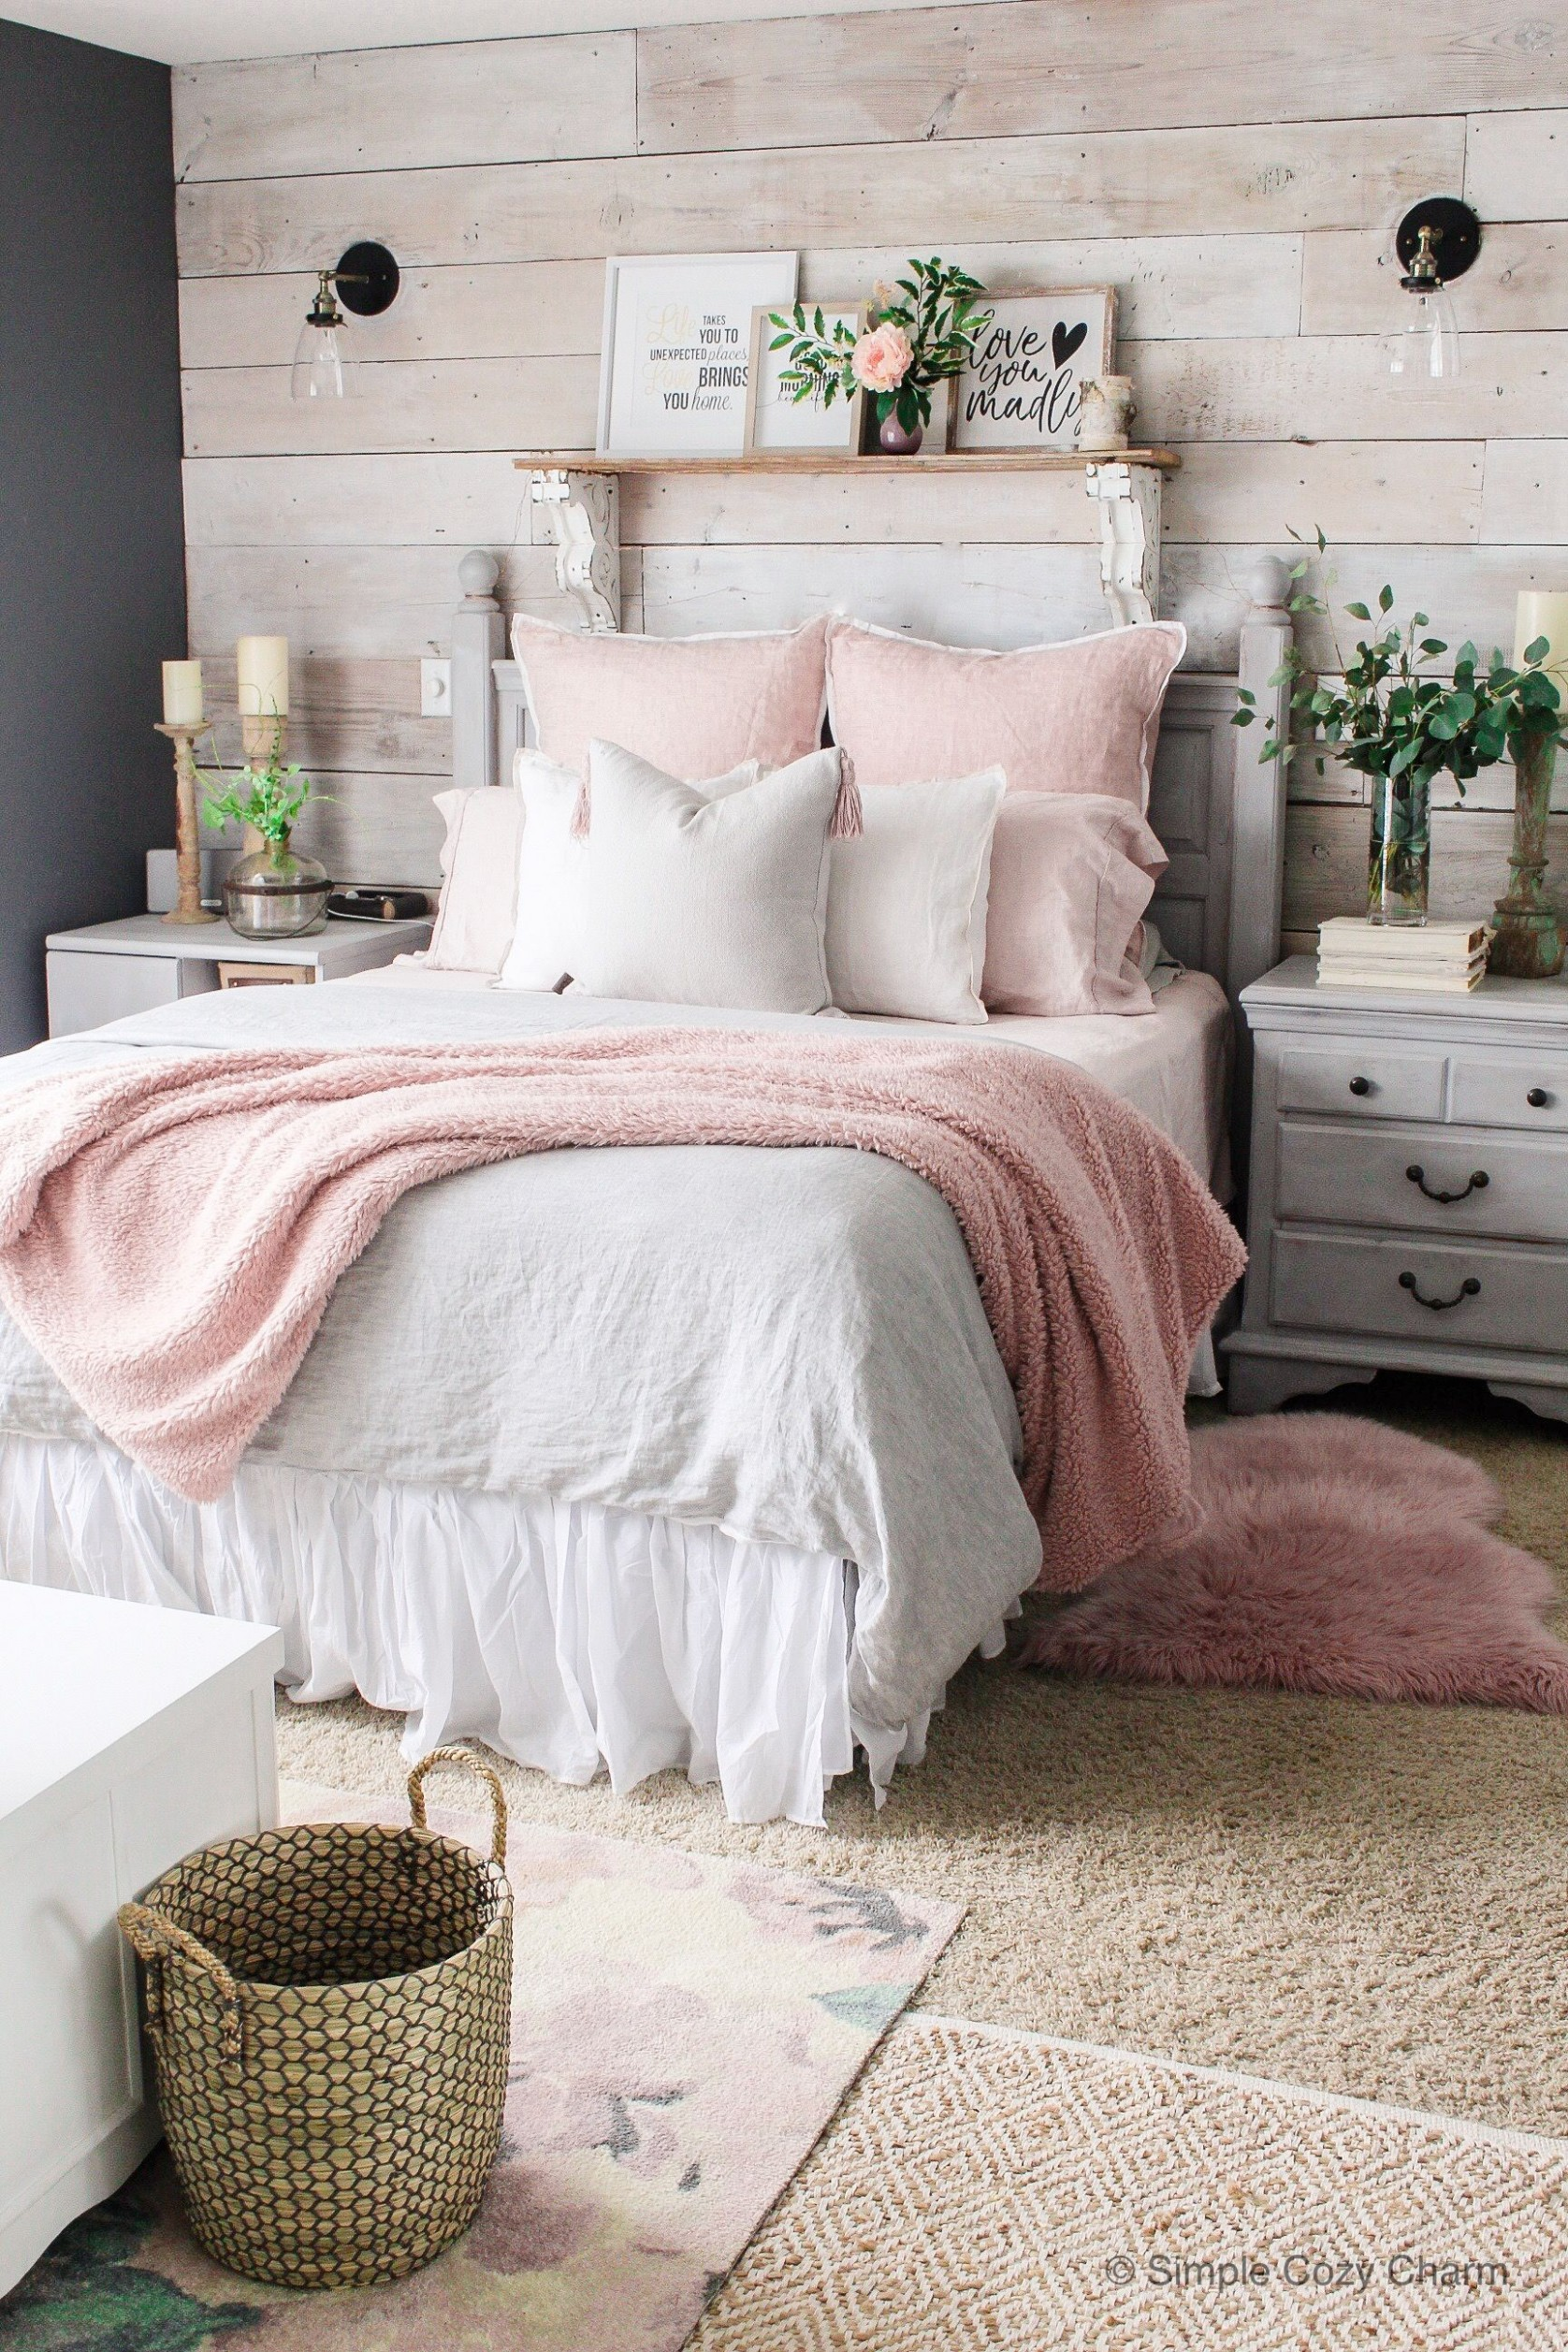 Mid-Winter Bedroom Facelift - Simple Cozy Charm  Bedroom refresh  - Bedroom Ideas Images